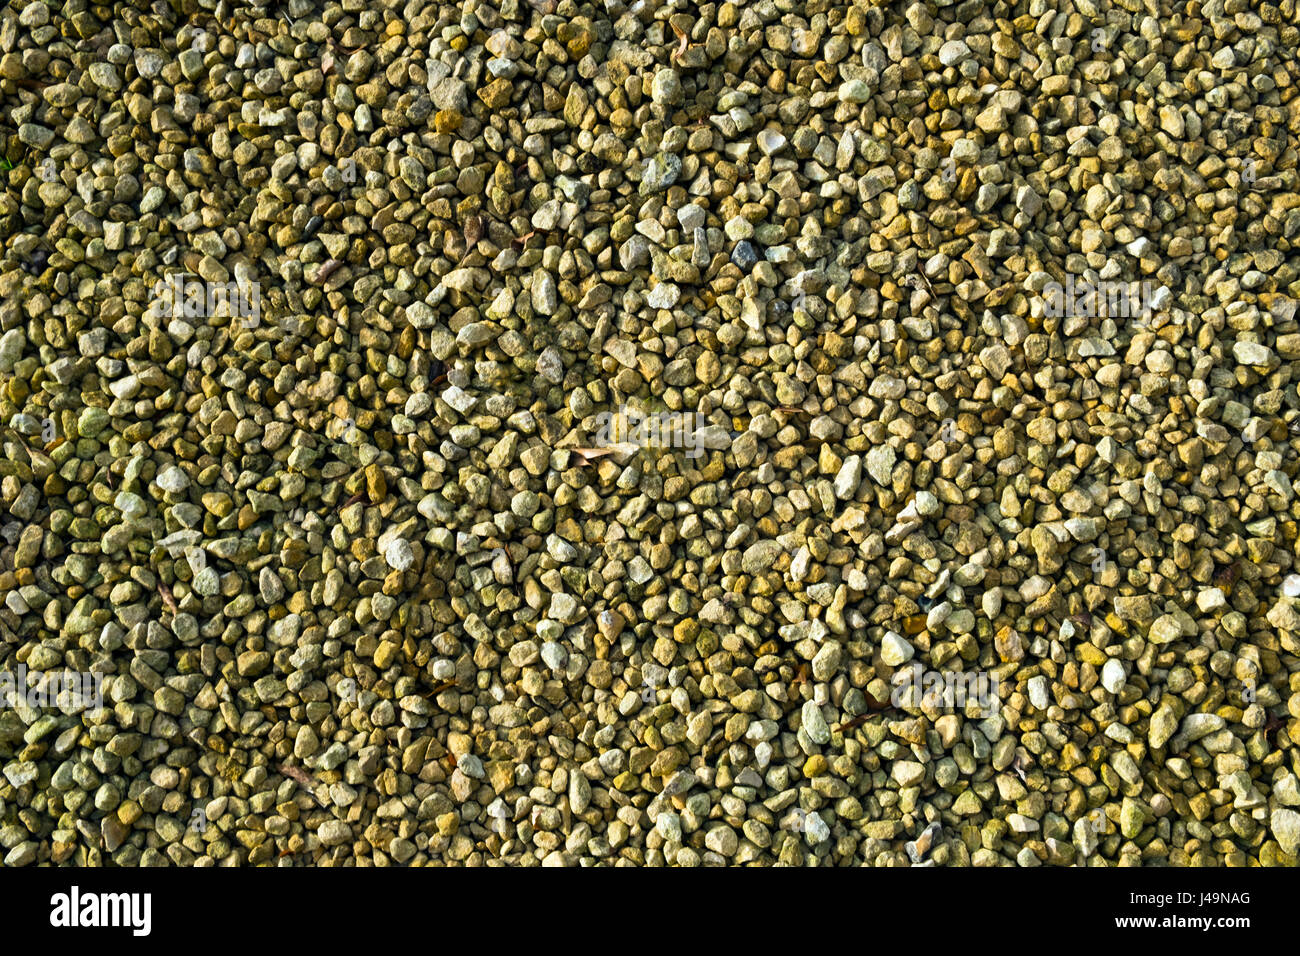 Limestone chippings hard landscaping surface - Stock Image